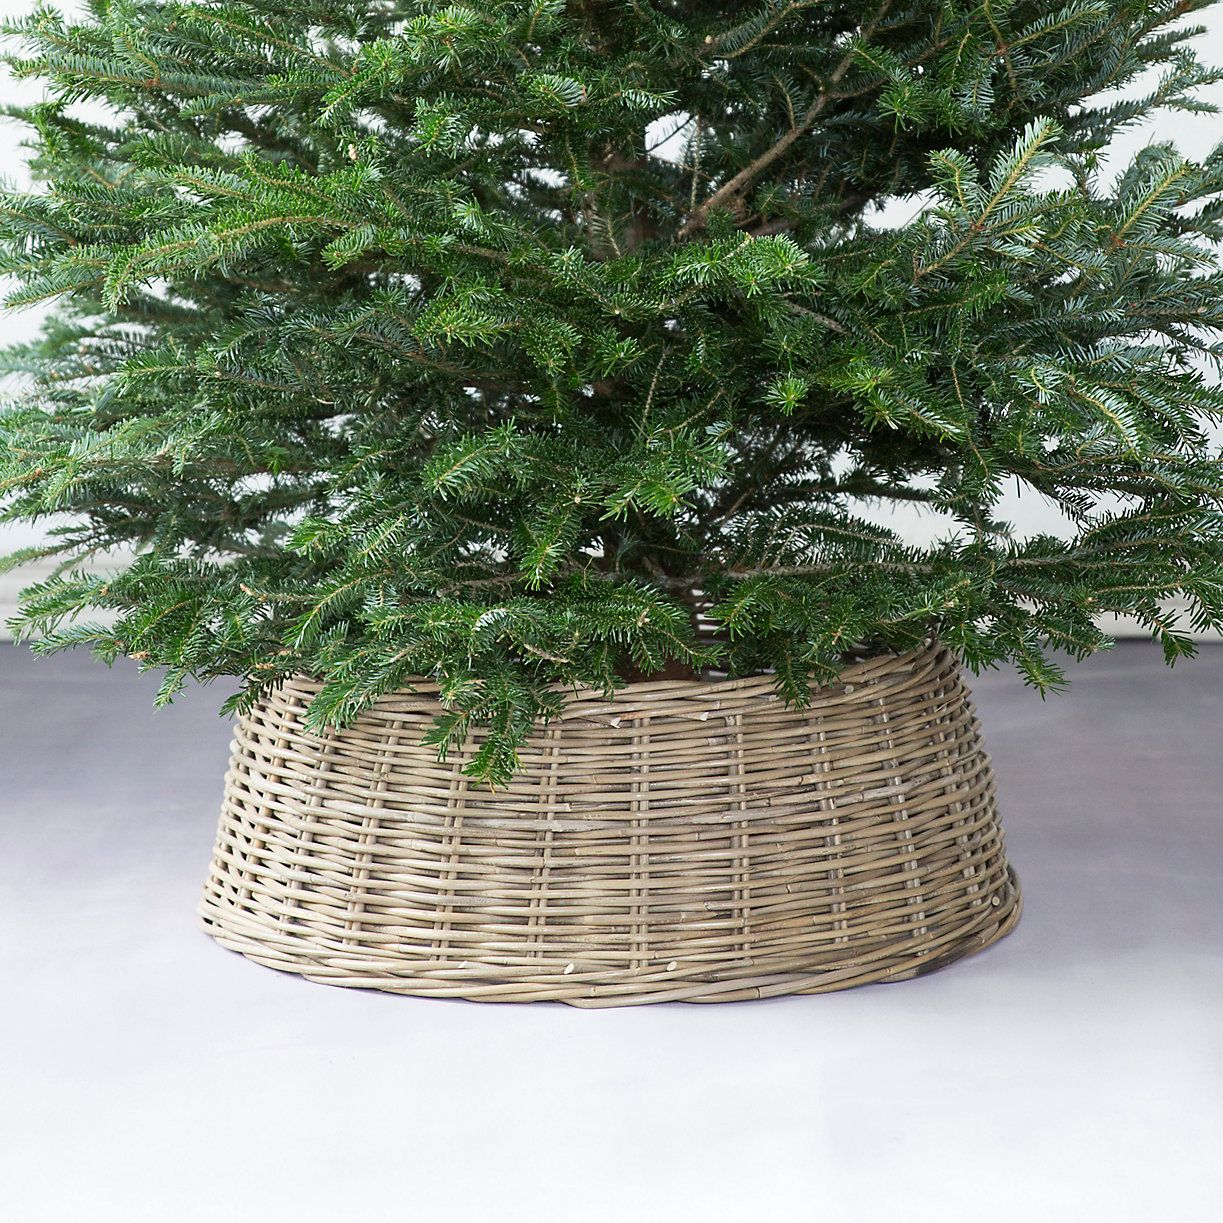 Complete your tree with this distinctive basket skirt